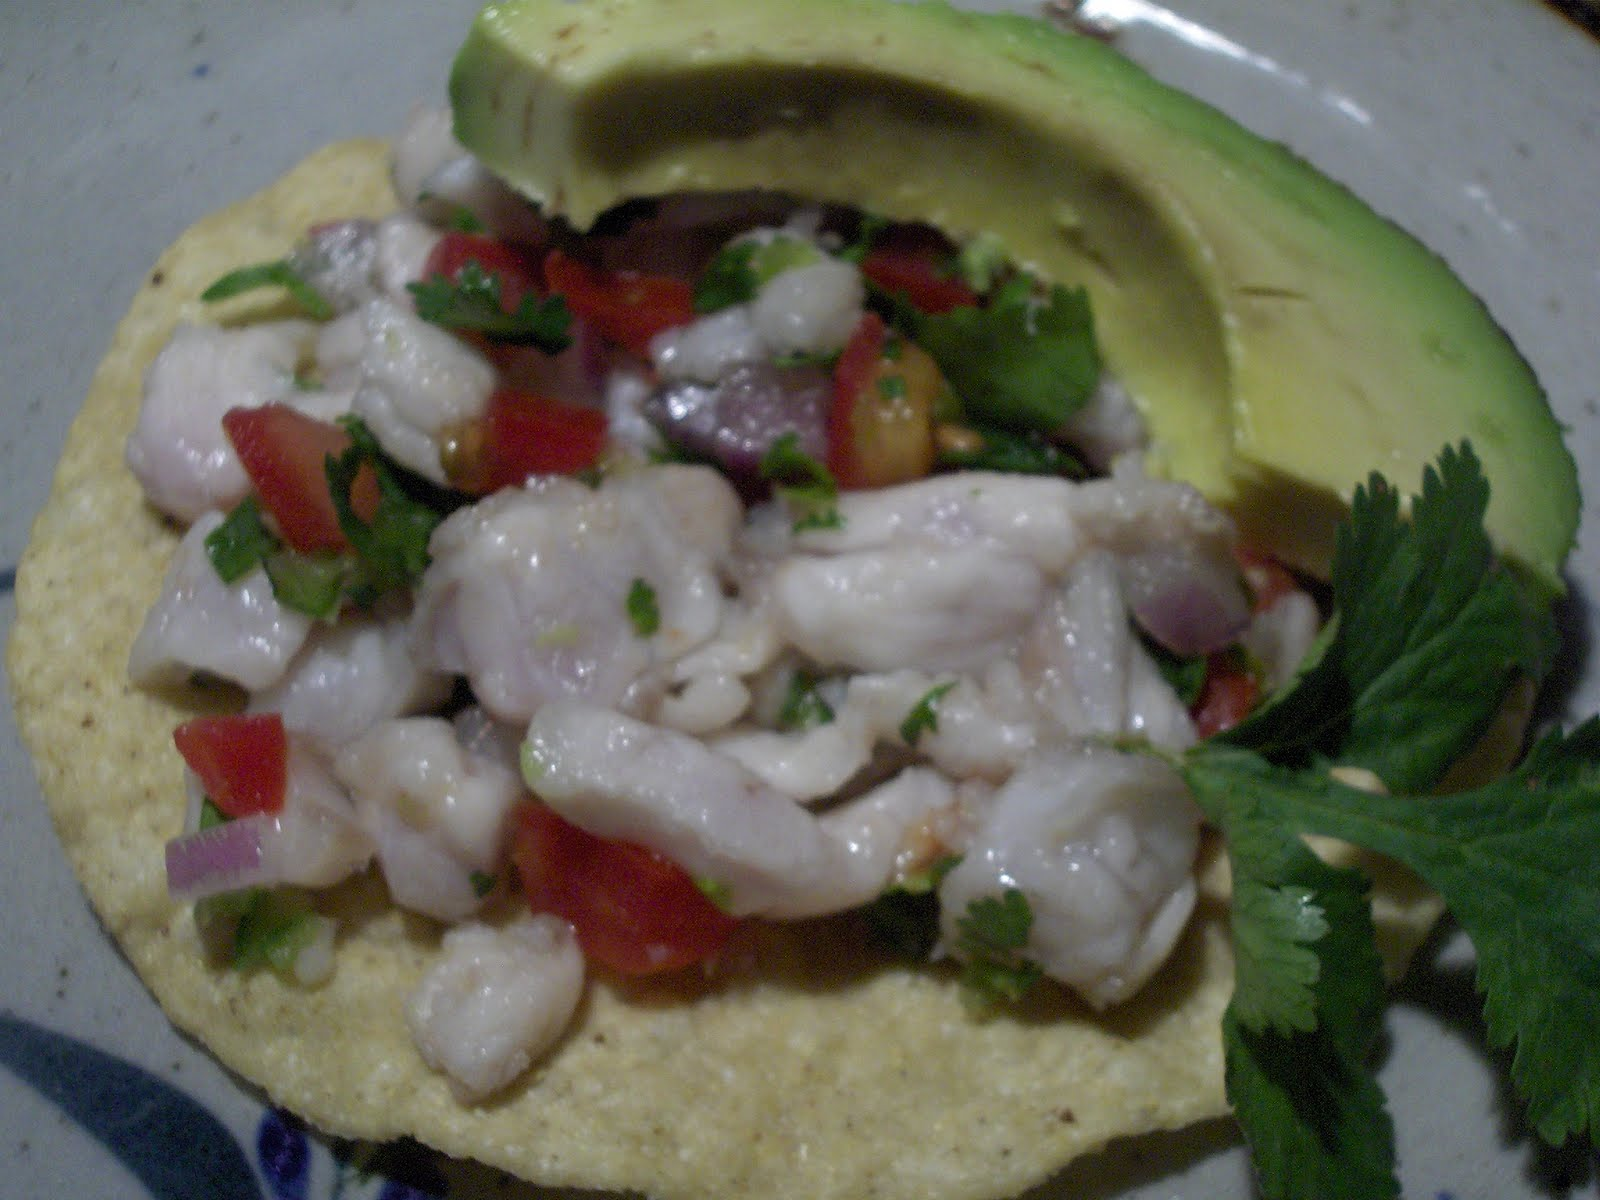 Ceviche in Mexico – Cooking in Mexico